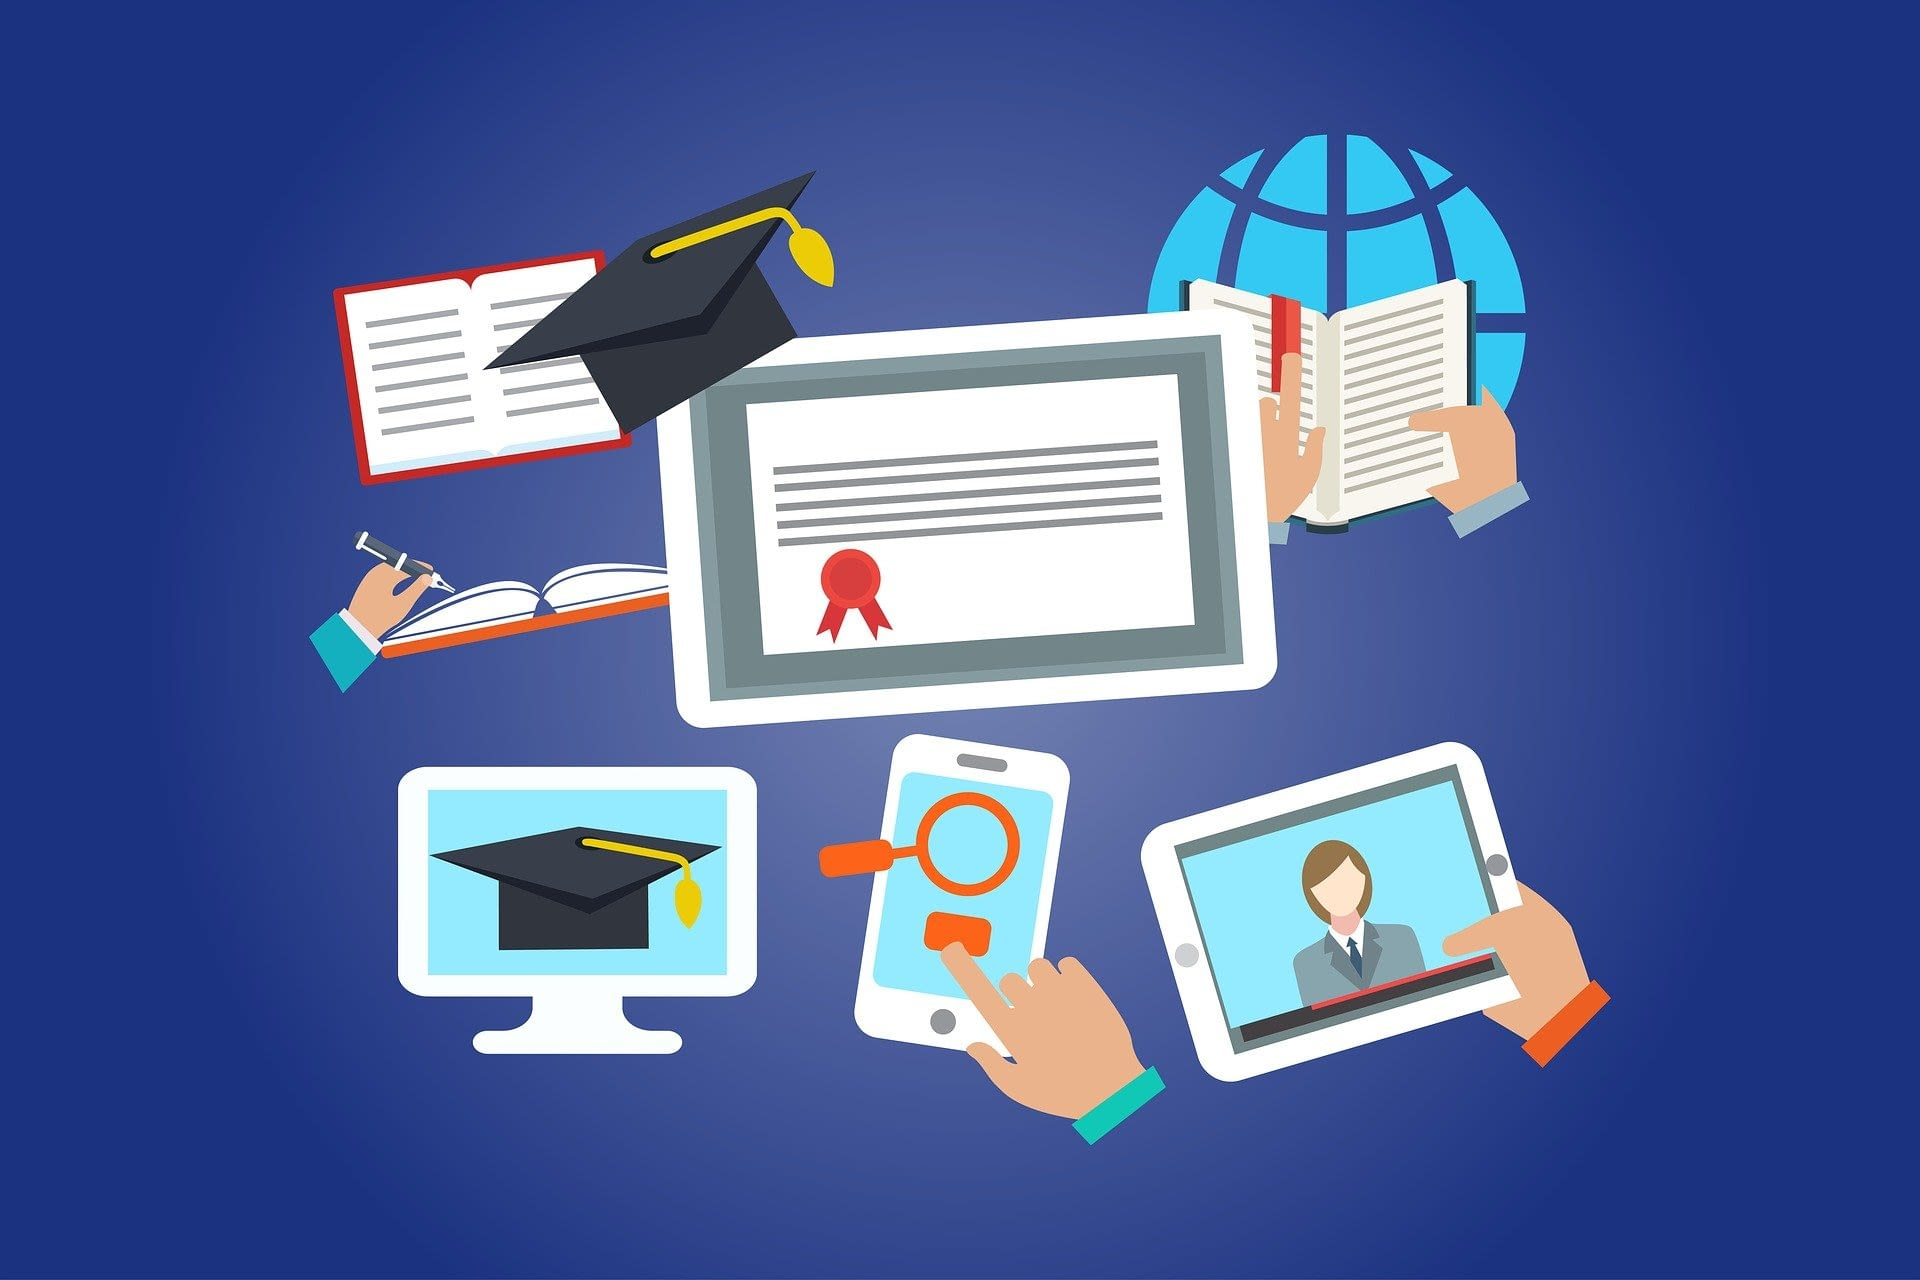 Top 10 Free Digital Marketing Certifications to Advance Your Career